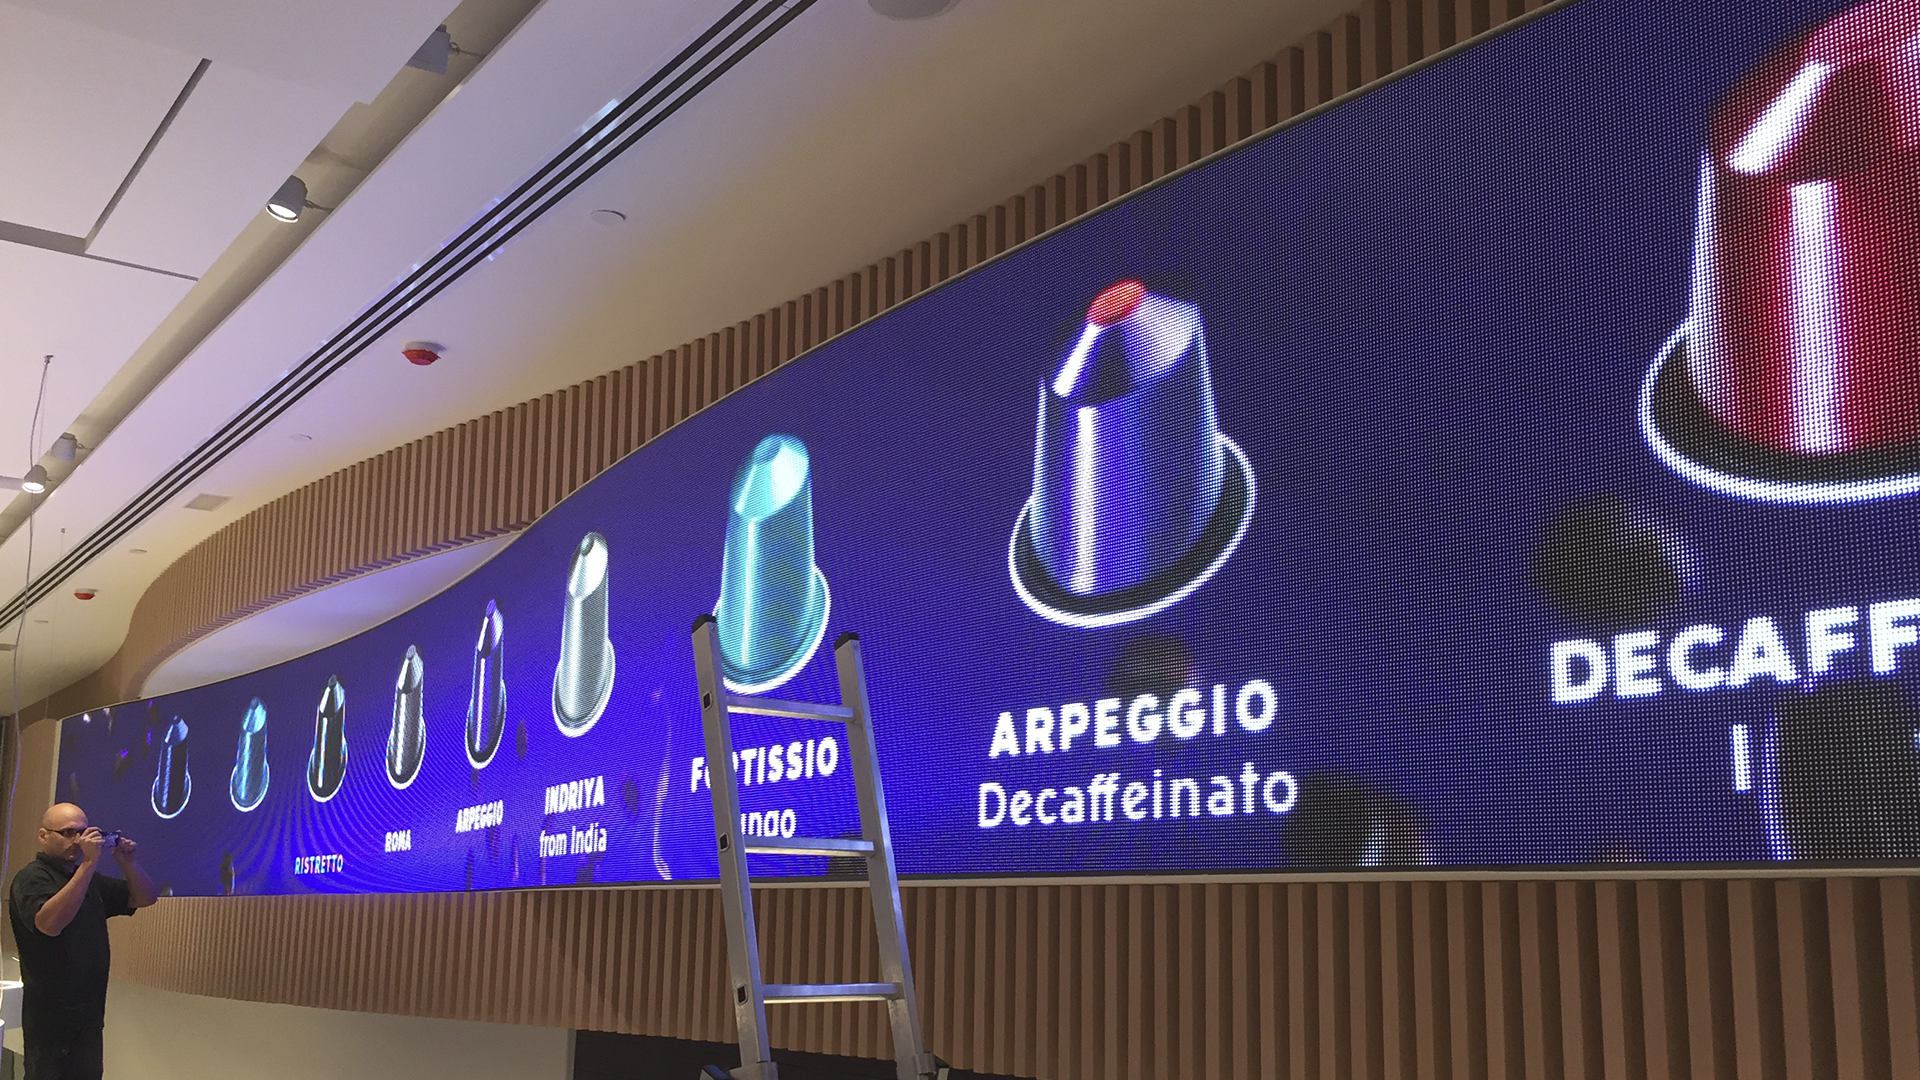 LEDDREAM | Post-venta y mantenimientos para pantallas LED